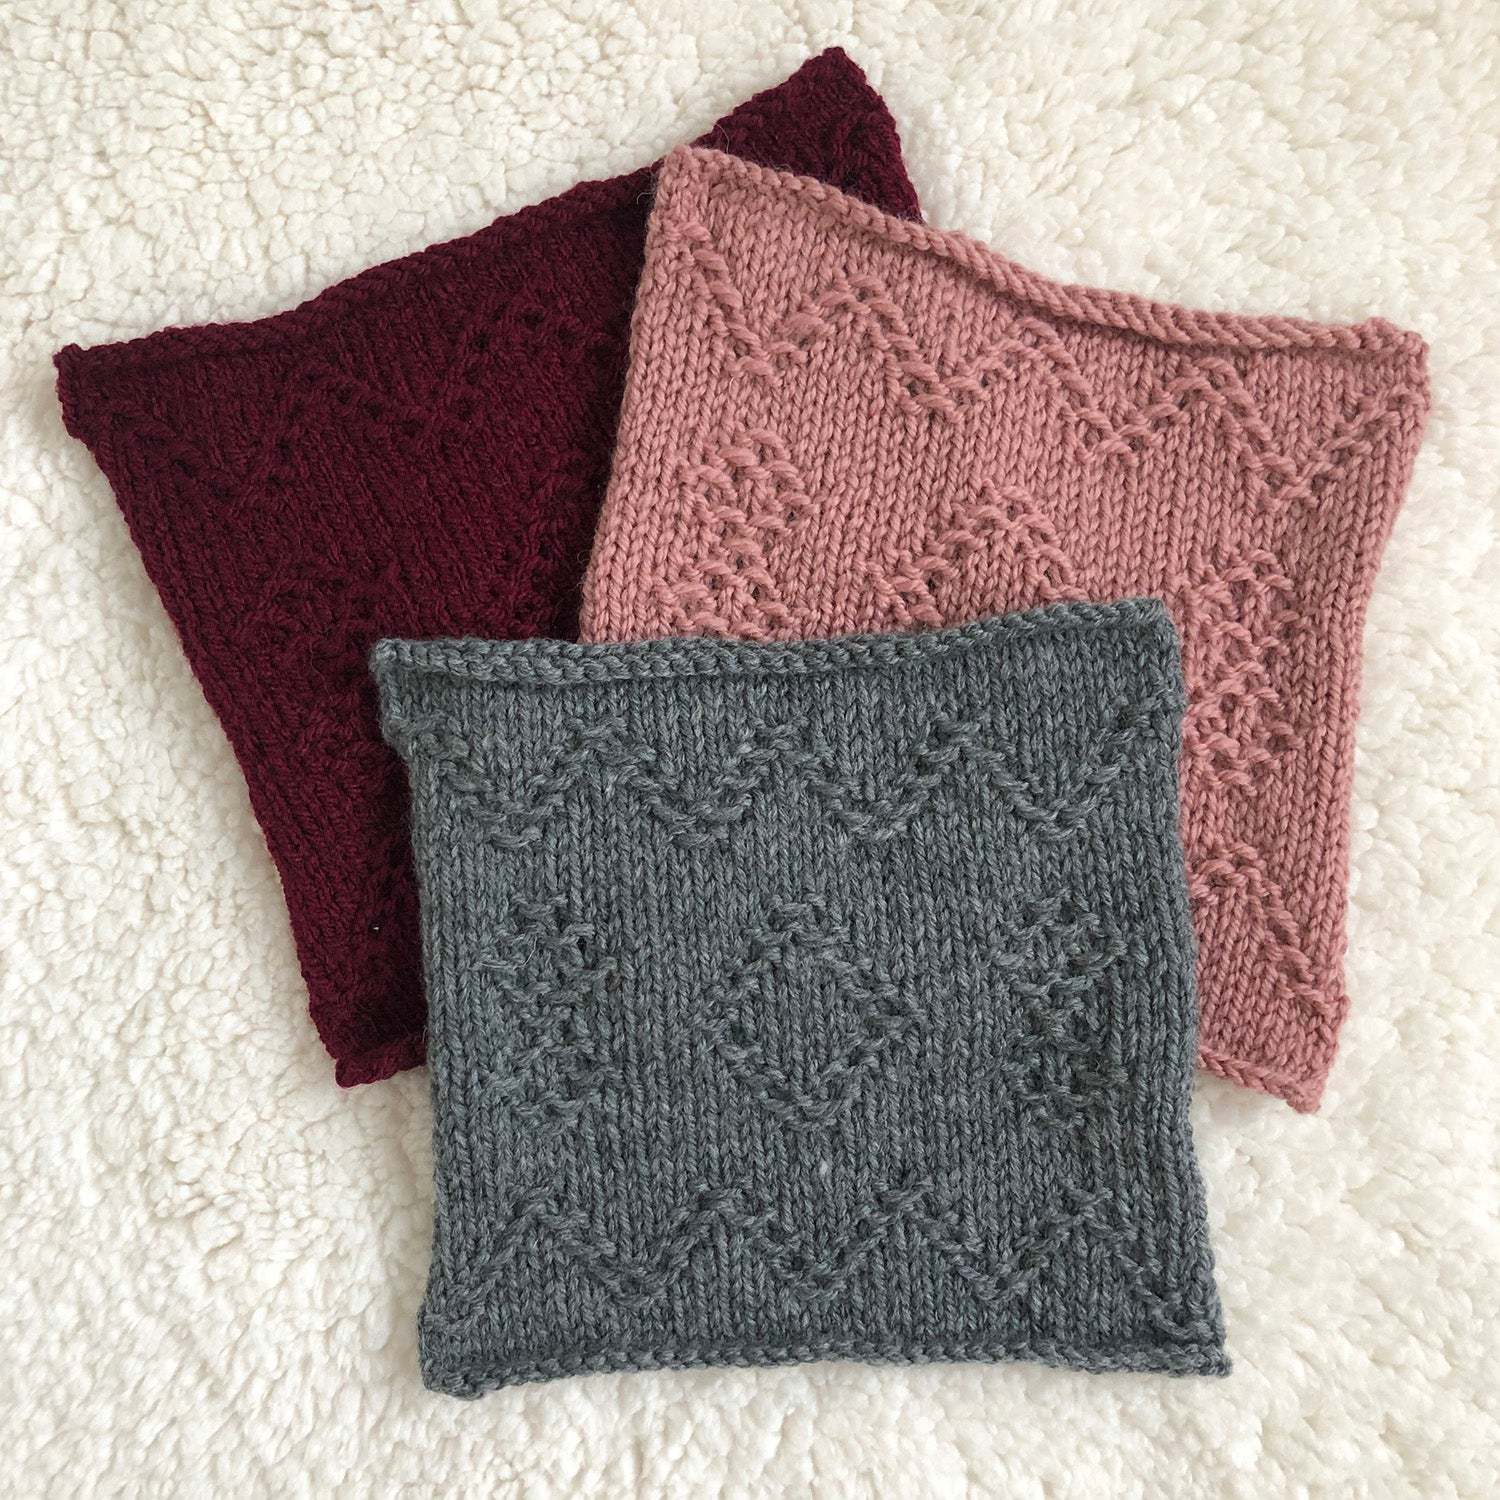 Week 3 Hob Hey Lane - A Day Out Knit Along Blanket by Sarah Hatton - How to follow a knitting chart